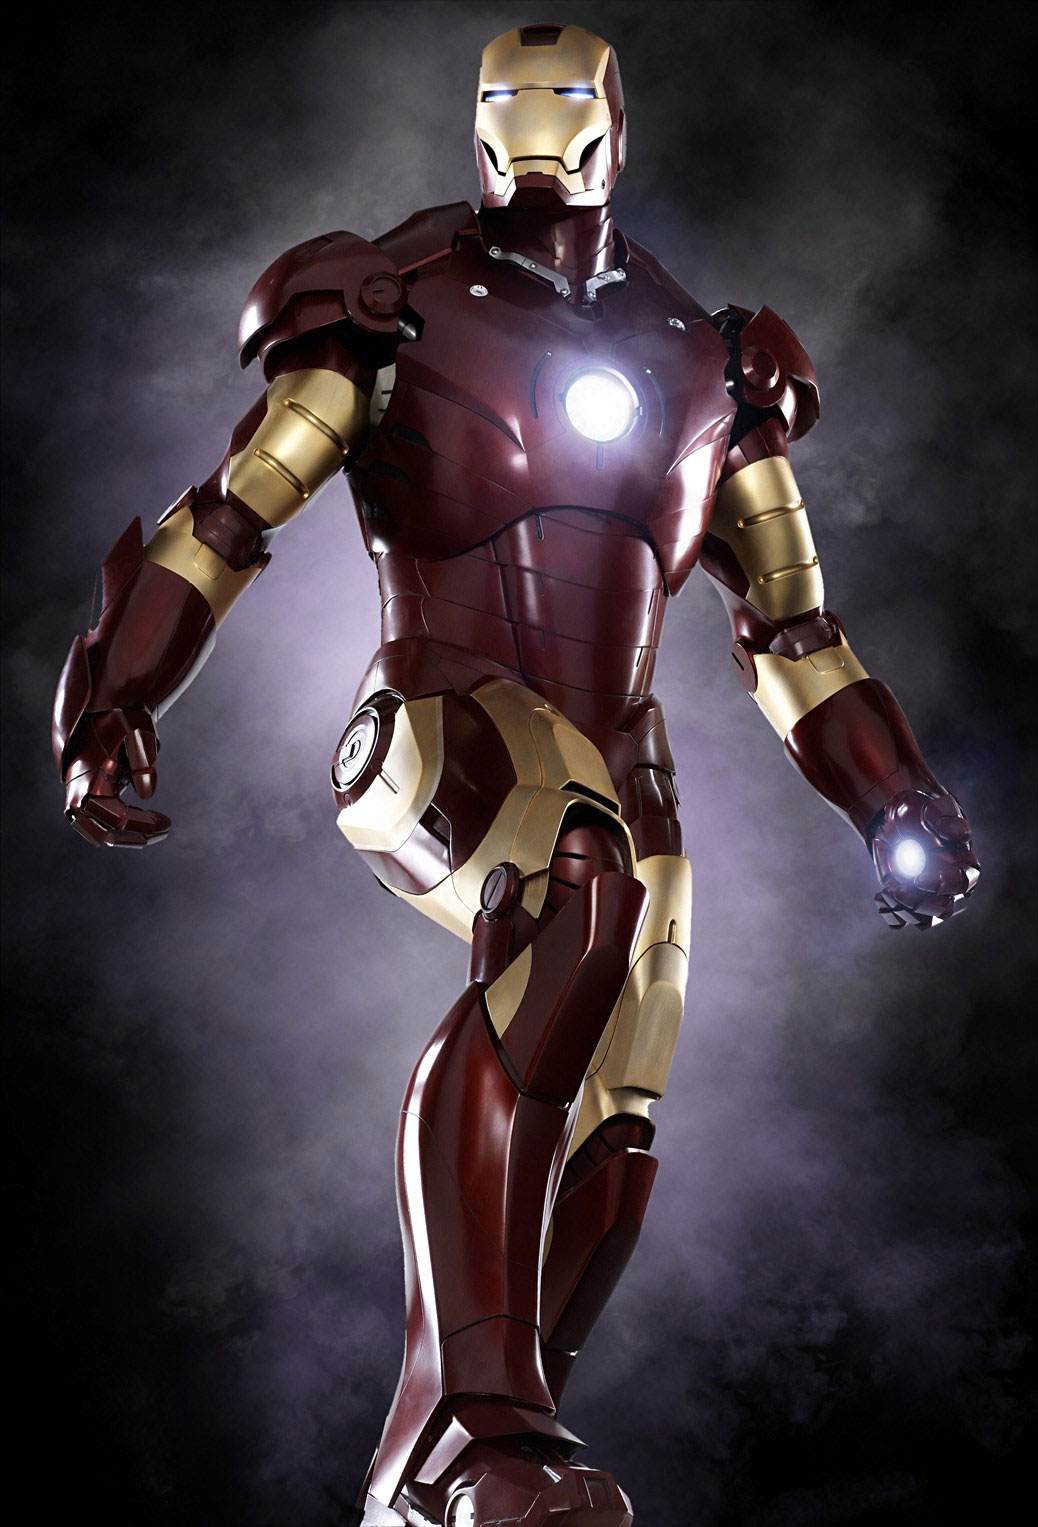 https://i0.wp.com/www.scifimoviepage.com/upcoming/photos/ironman1.jpg